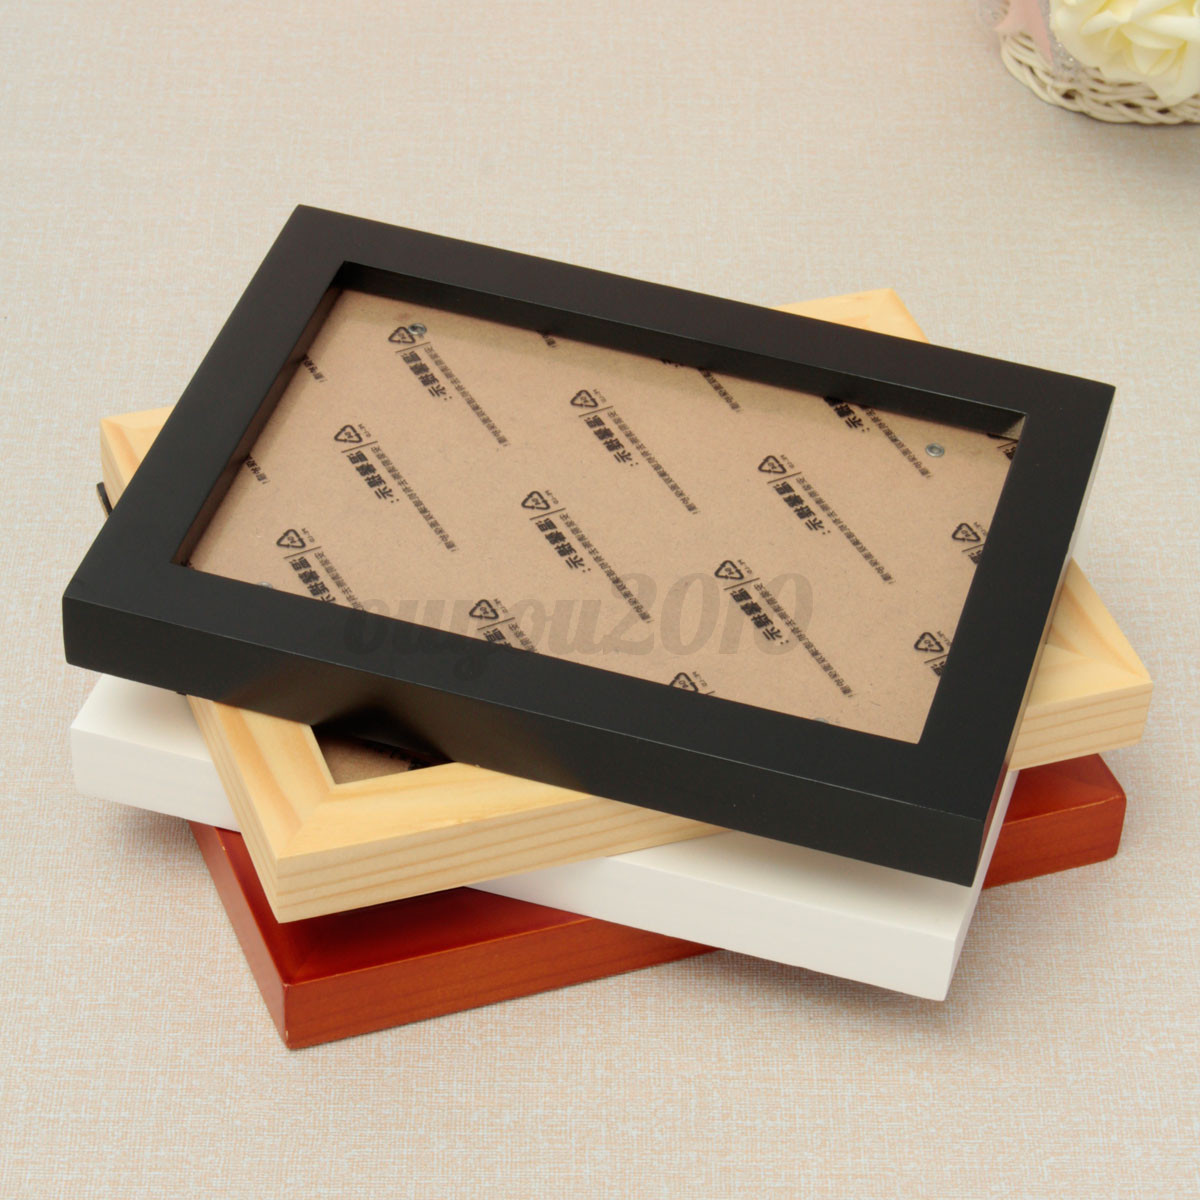 Wooden Box Wall Decor : Wood wooden photo picture poster frames box wall mounted